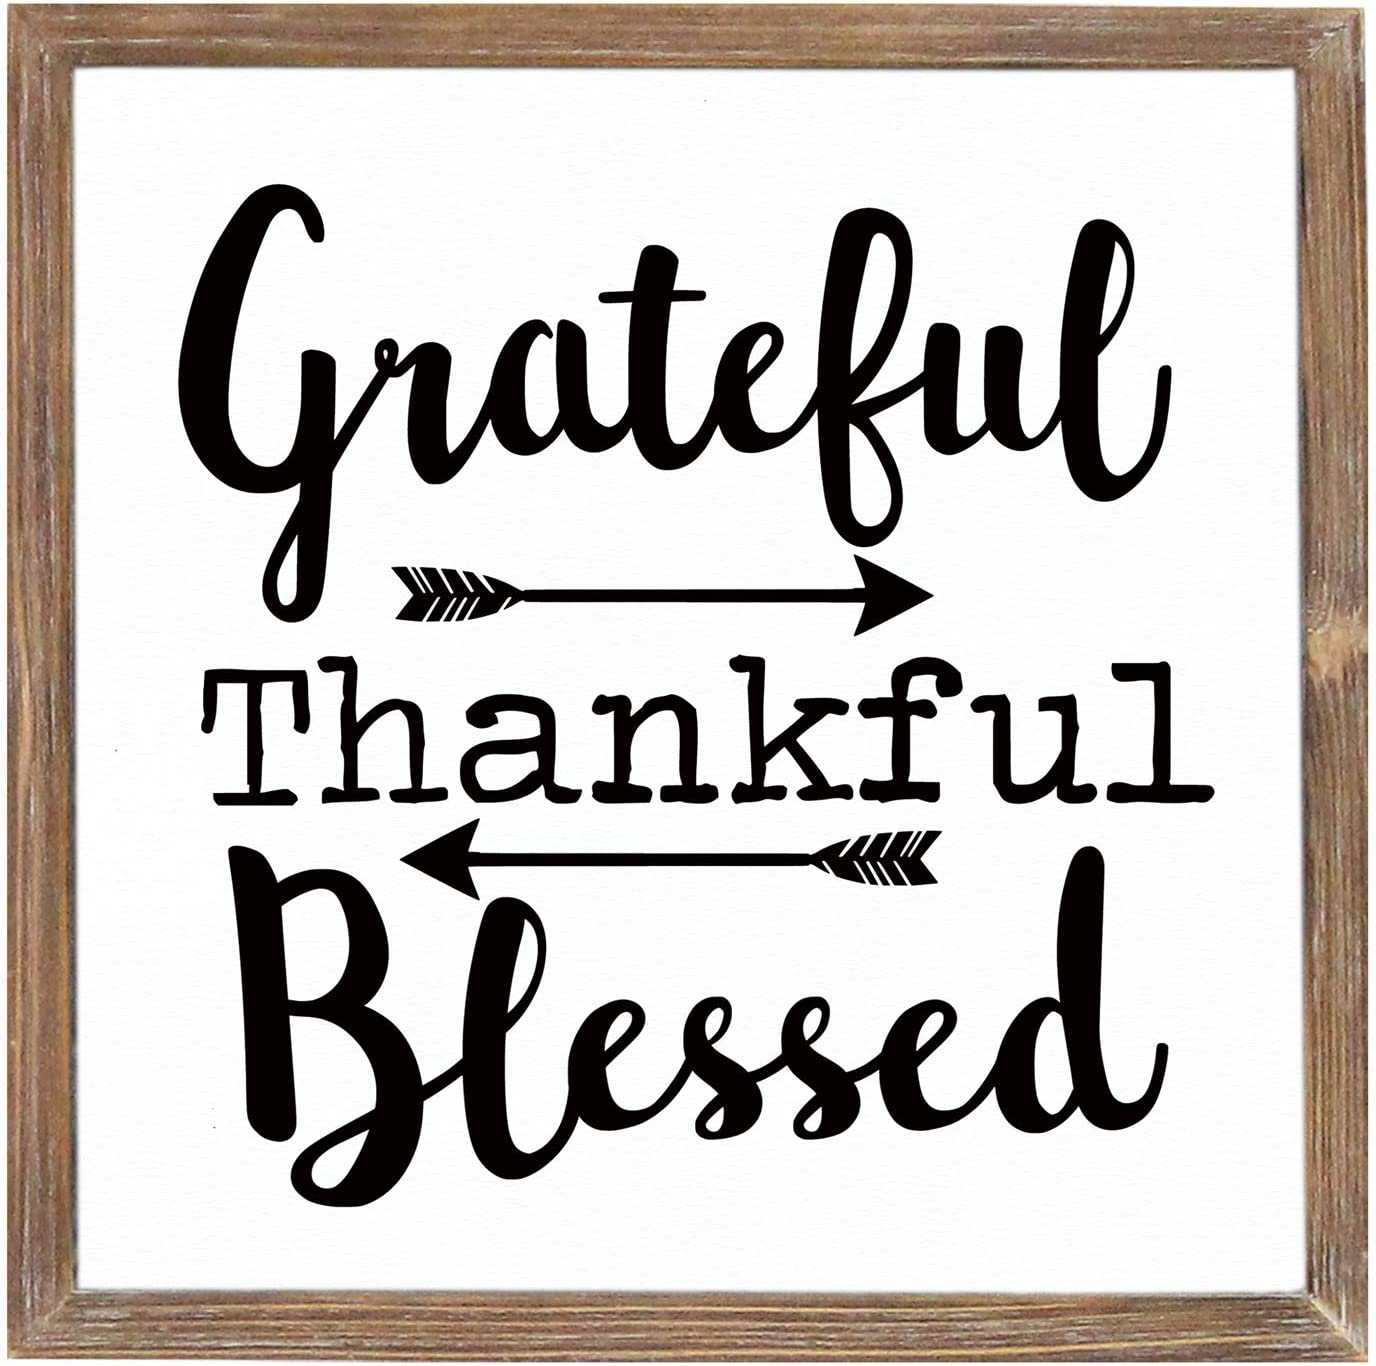 Grateful Thankful Blessed Distressed Wood Framed Art Sign for Home Decor,Square Wall Decor with Quotes Sayings